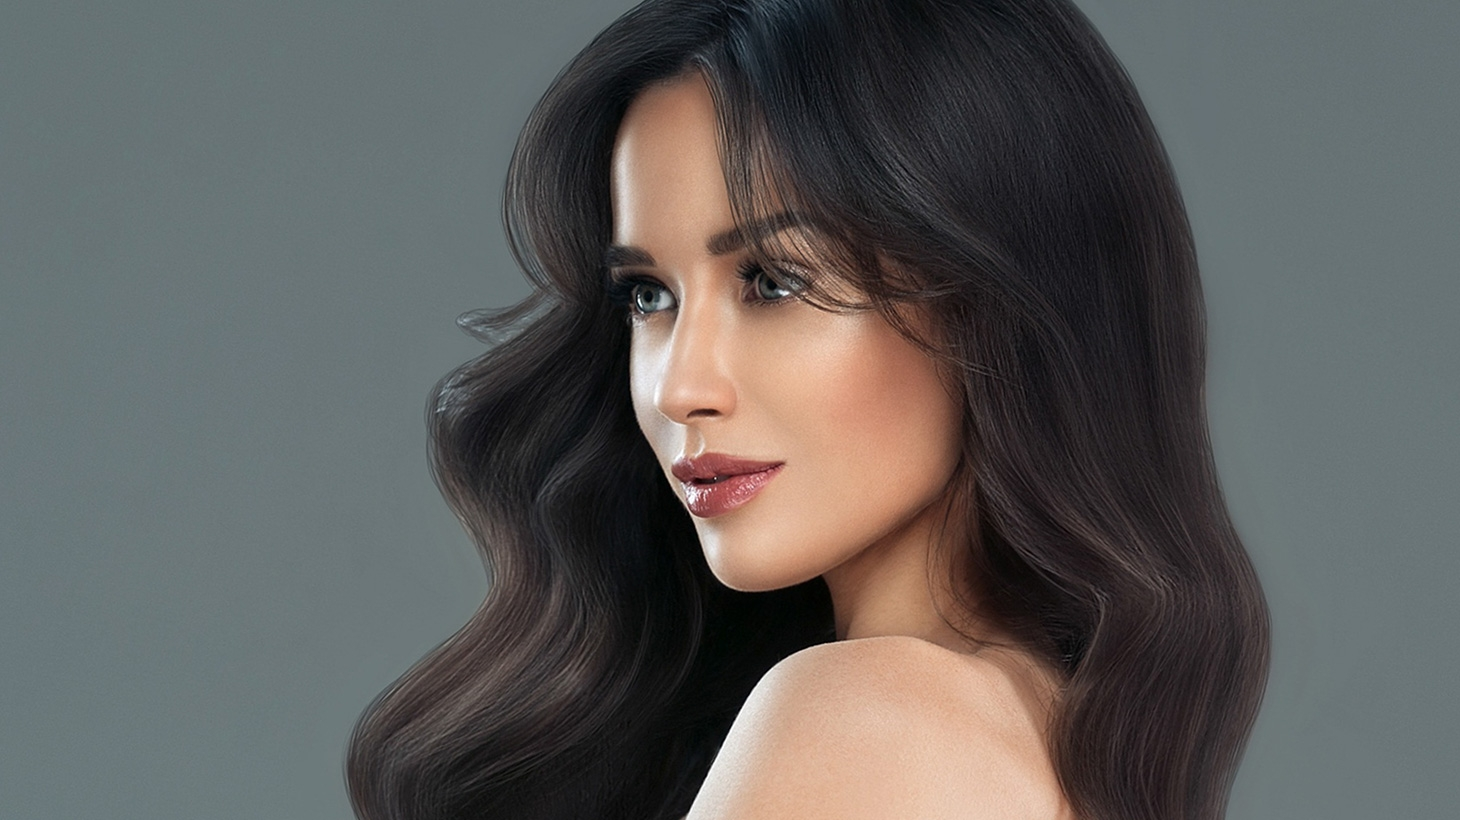 Woman with long wavy hair